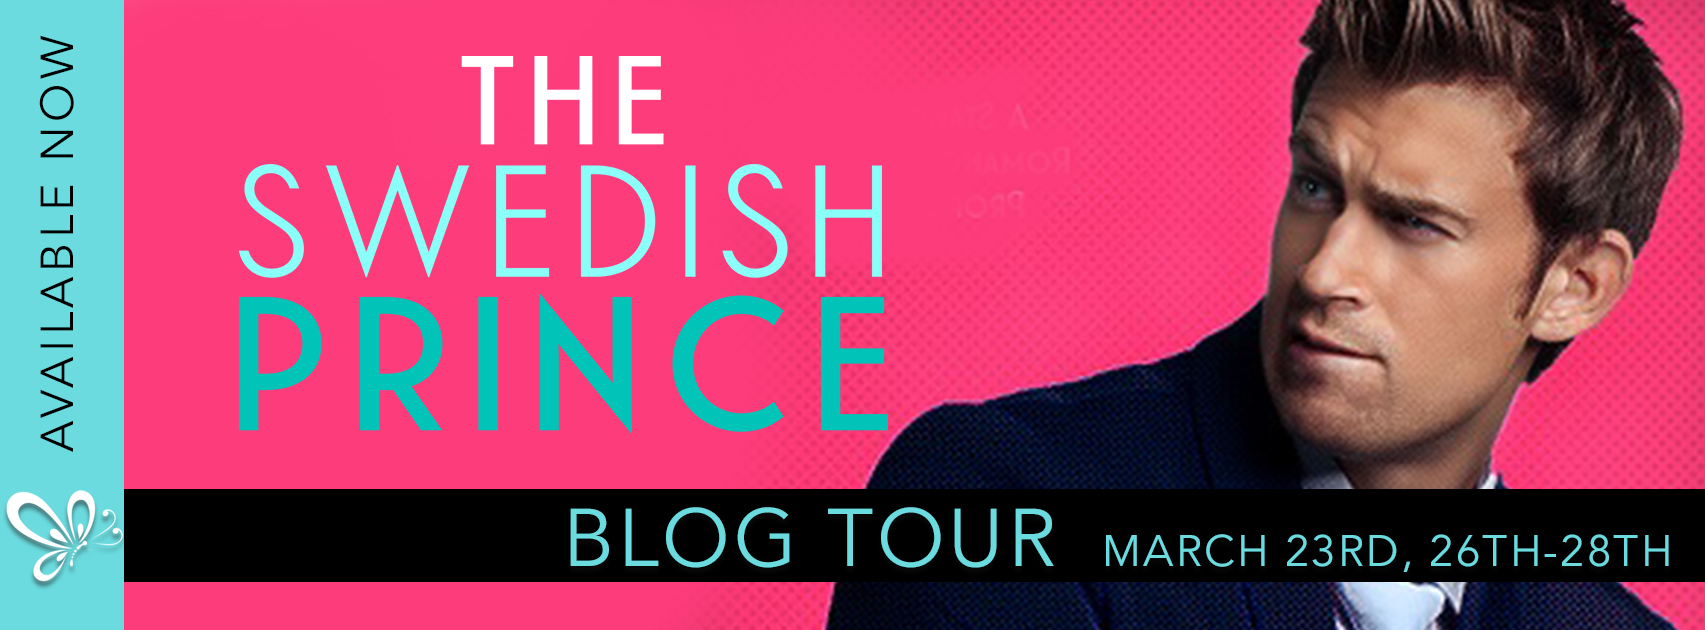 Blog Tour & Review: The Swedish Prince by Karina Halle